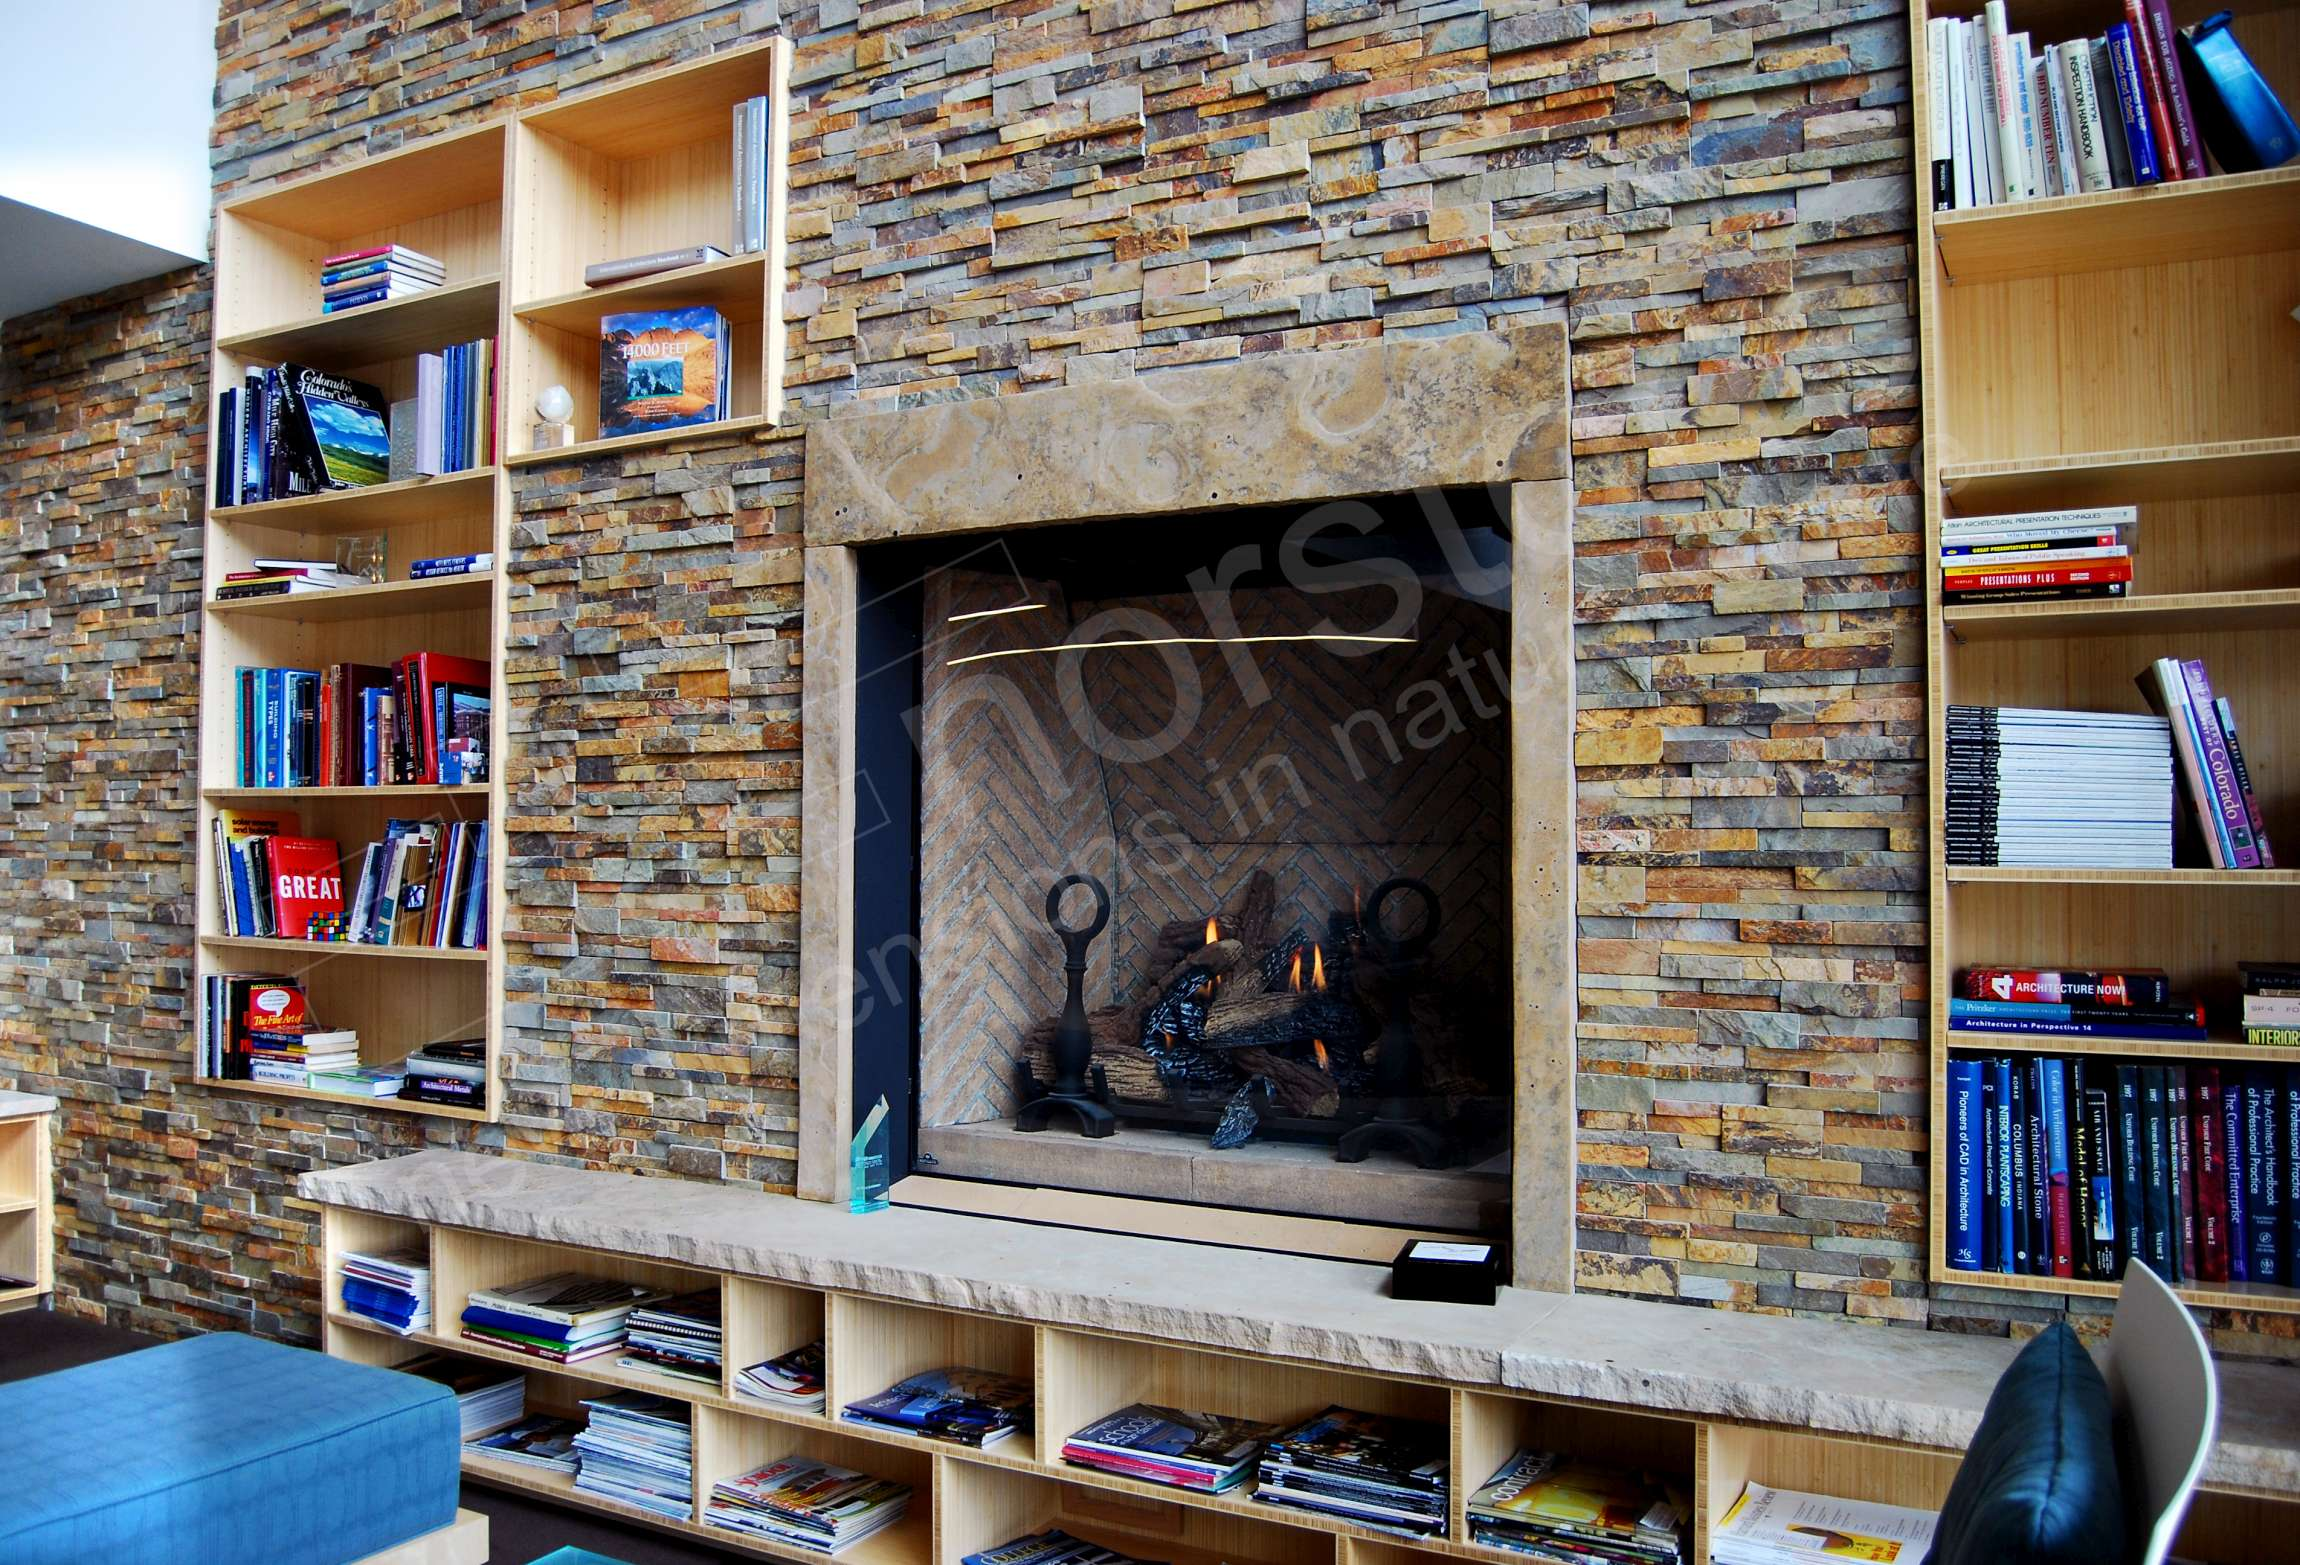 Norstone Ochre Rock Panels used on a large wood burning fireplace with natural hewn stone hearth